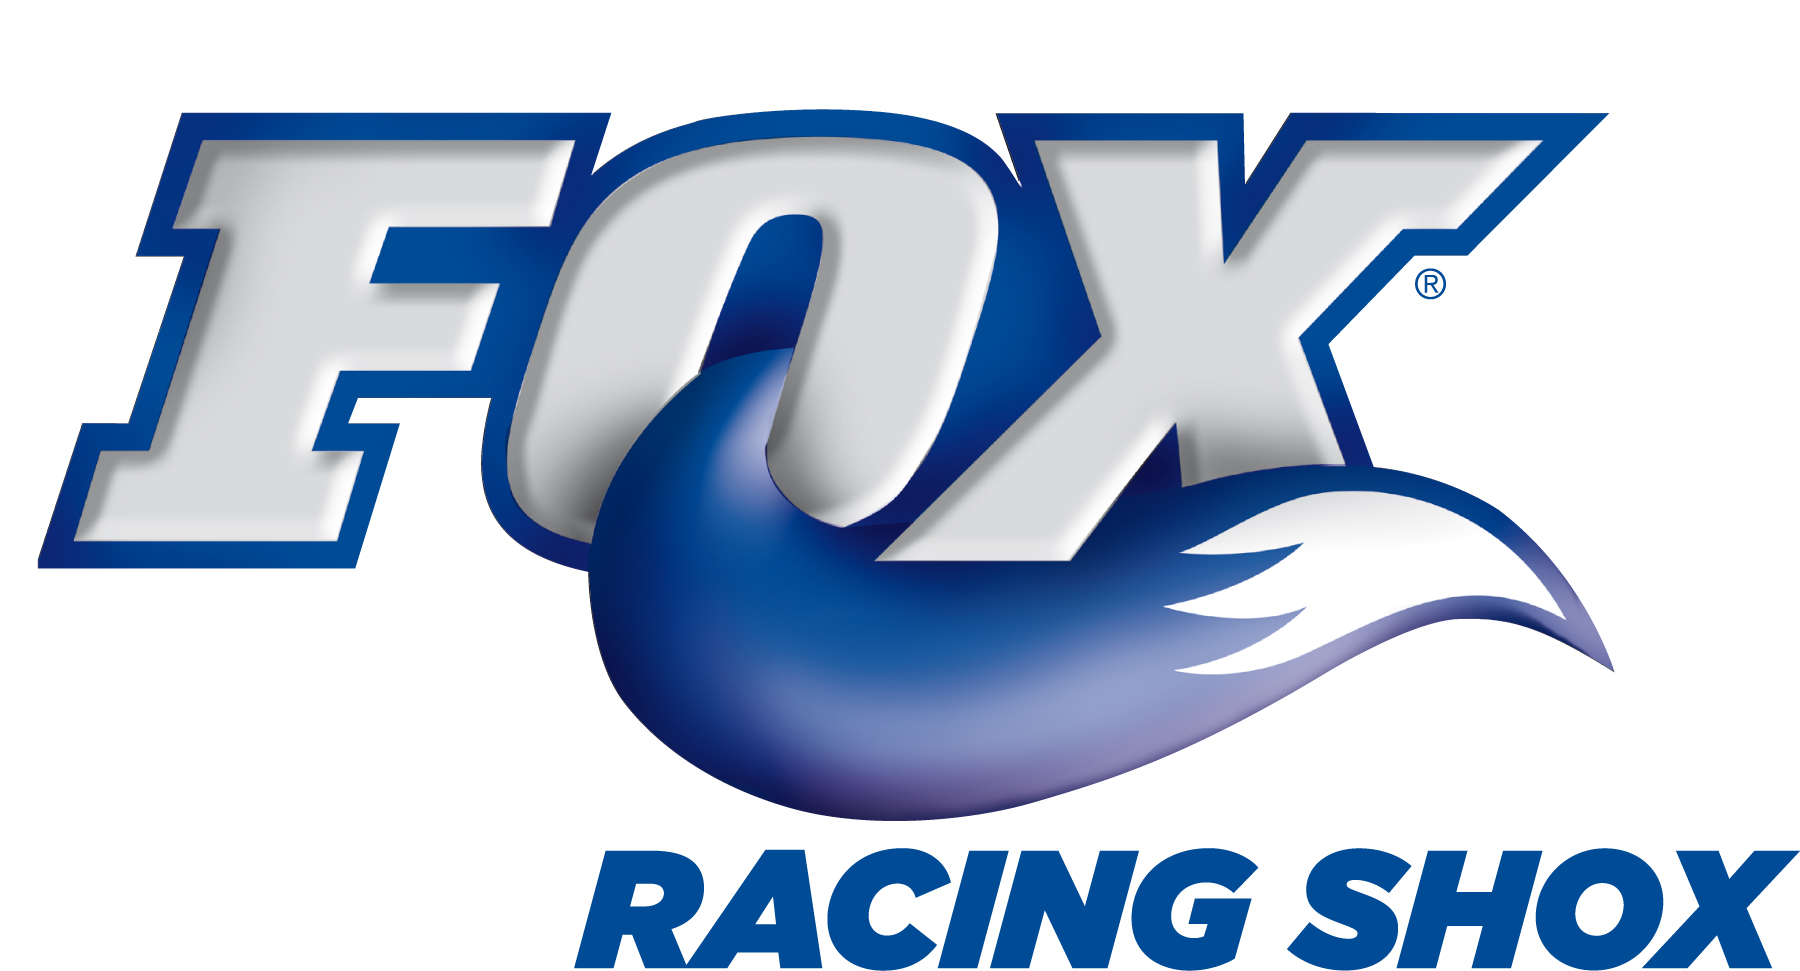 Fox Racing Shox Official